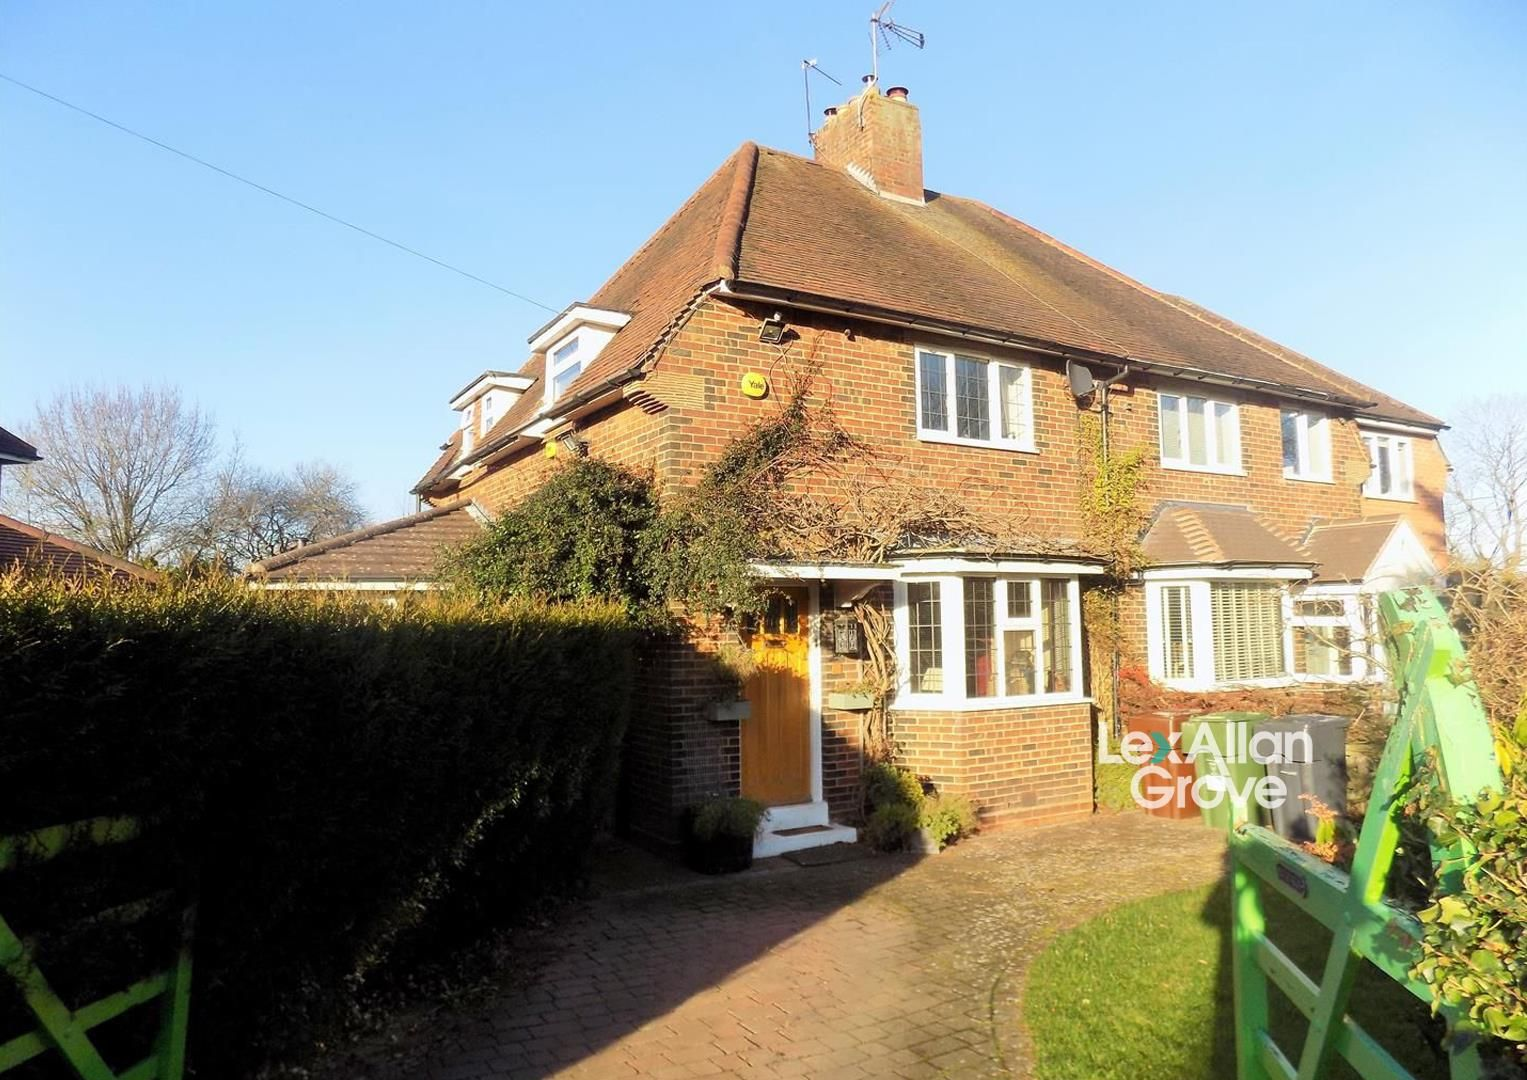 3 bed semi-detached for sale in Hunnington, B62